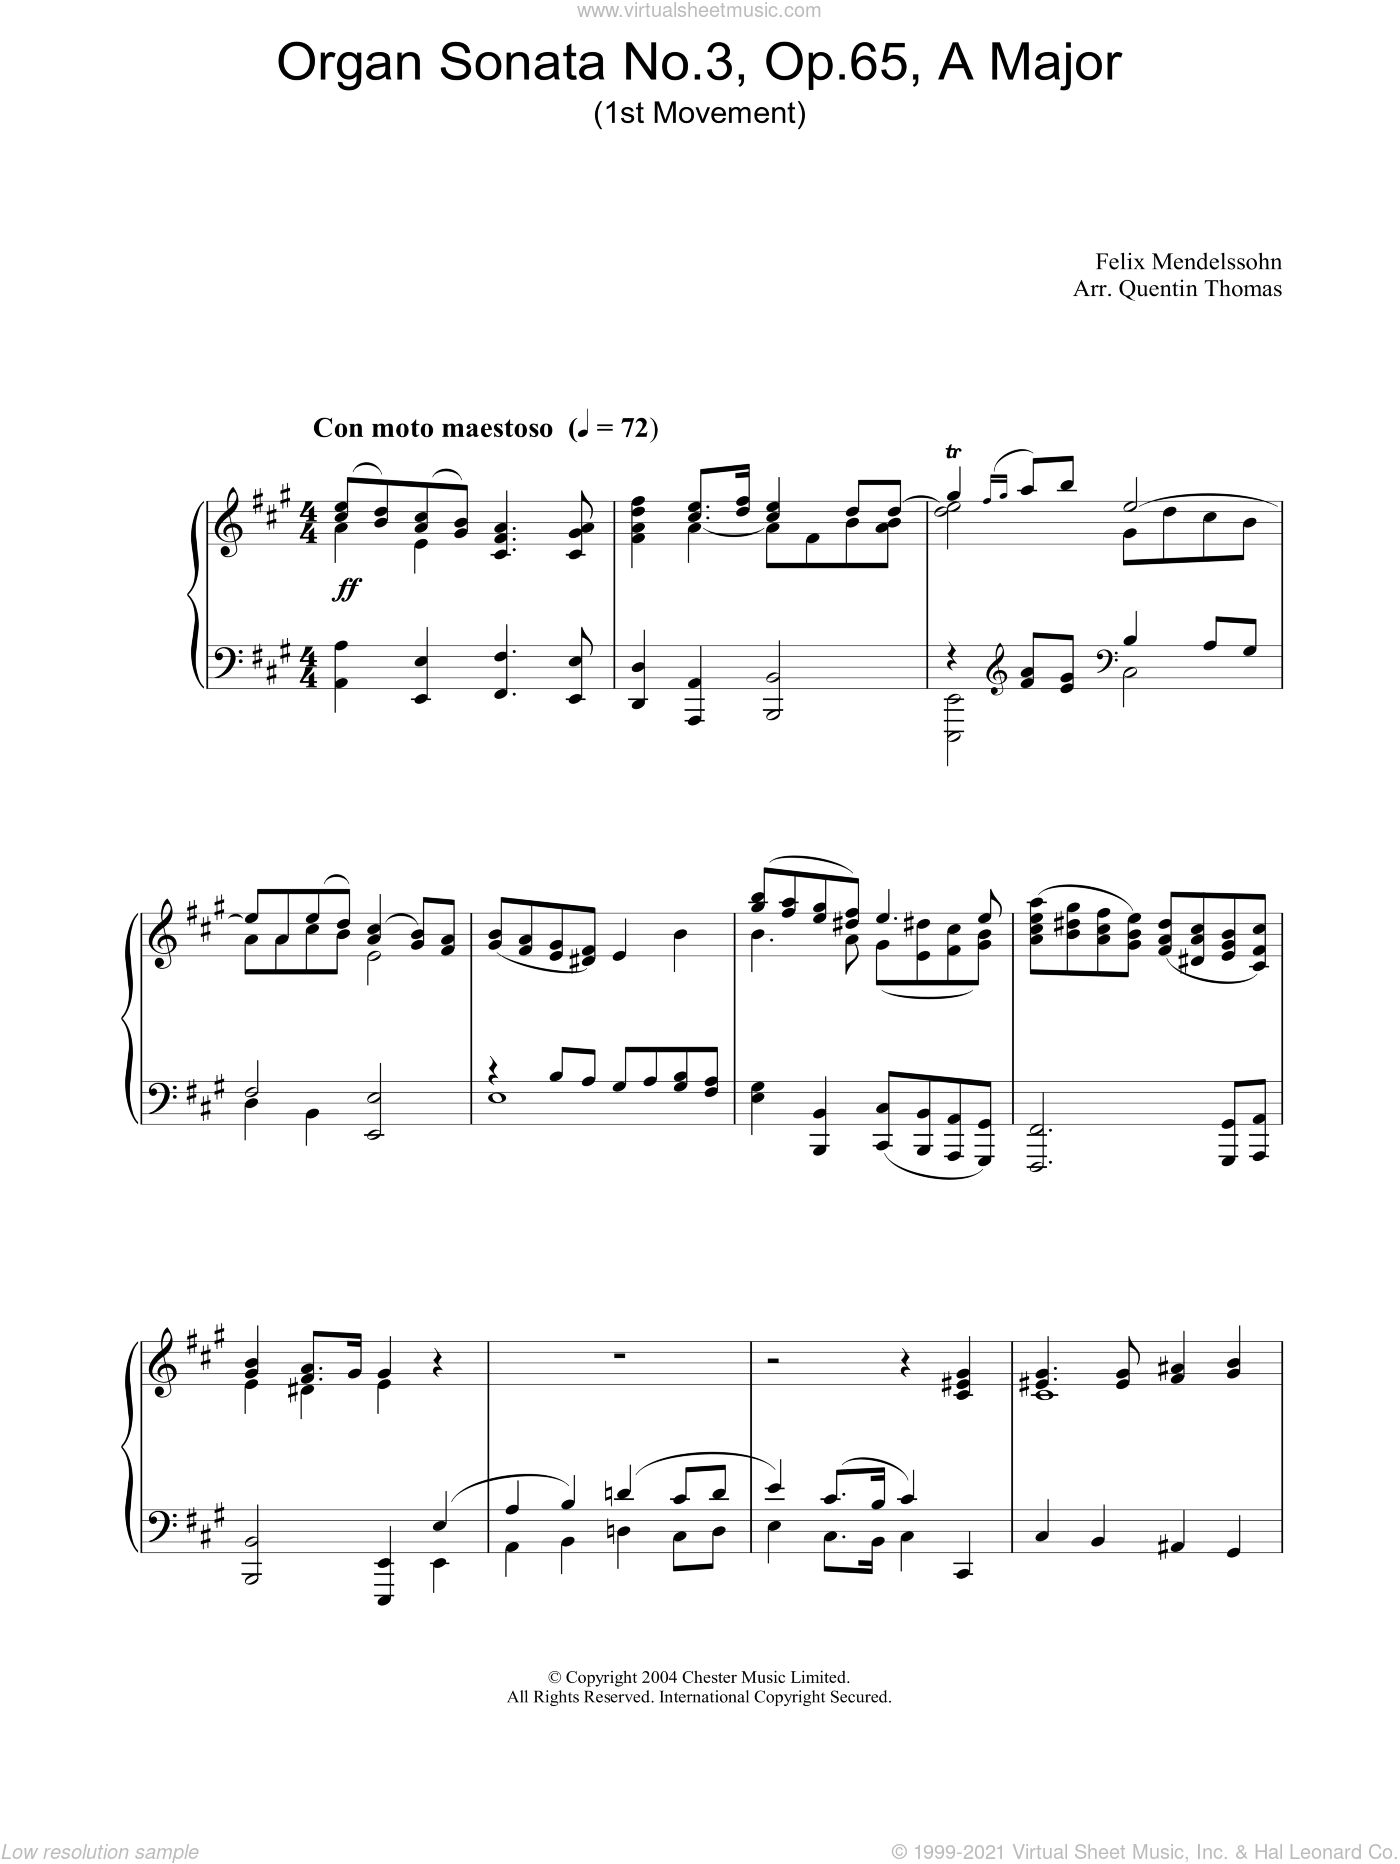 Organ Sonata No.3, Op.65, A Major sheet music for piano solo by Felix Mendelssohn-Bartholdy. Score Image Preview.